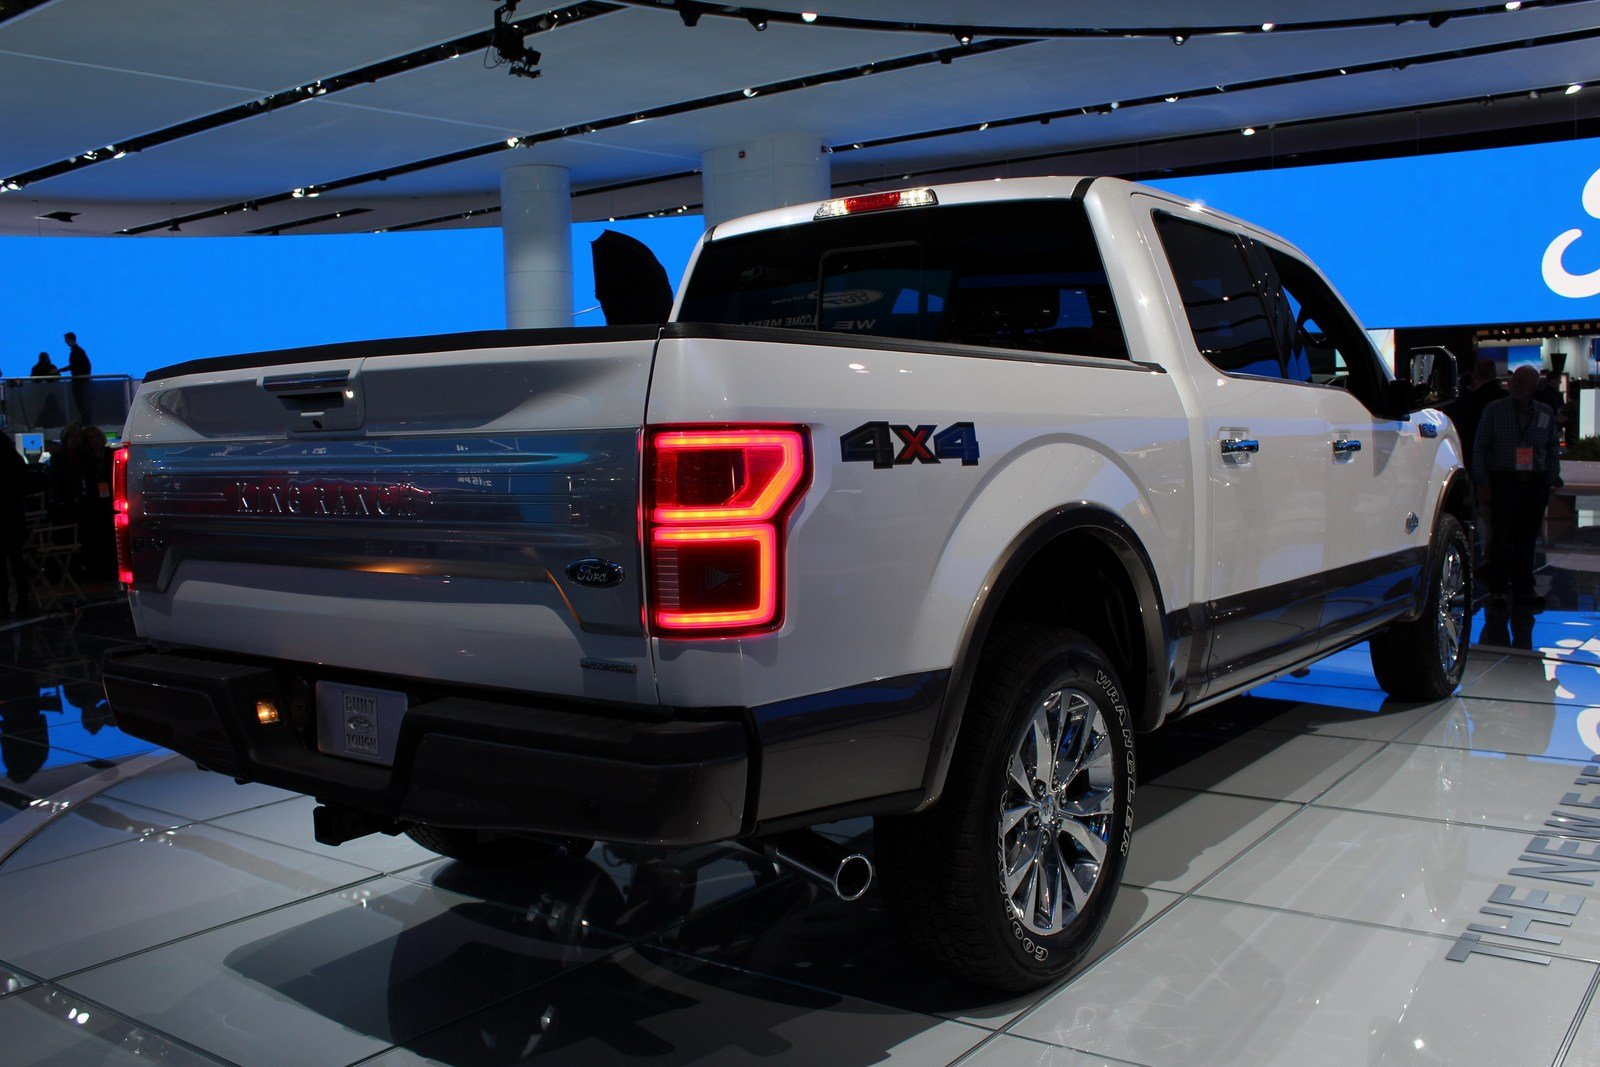 2018 ford f 150 picture 701002 truck review top speed. Black Bedroom Furniture Sets. Home Design Ideas